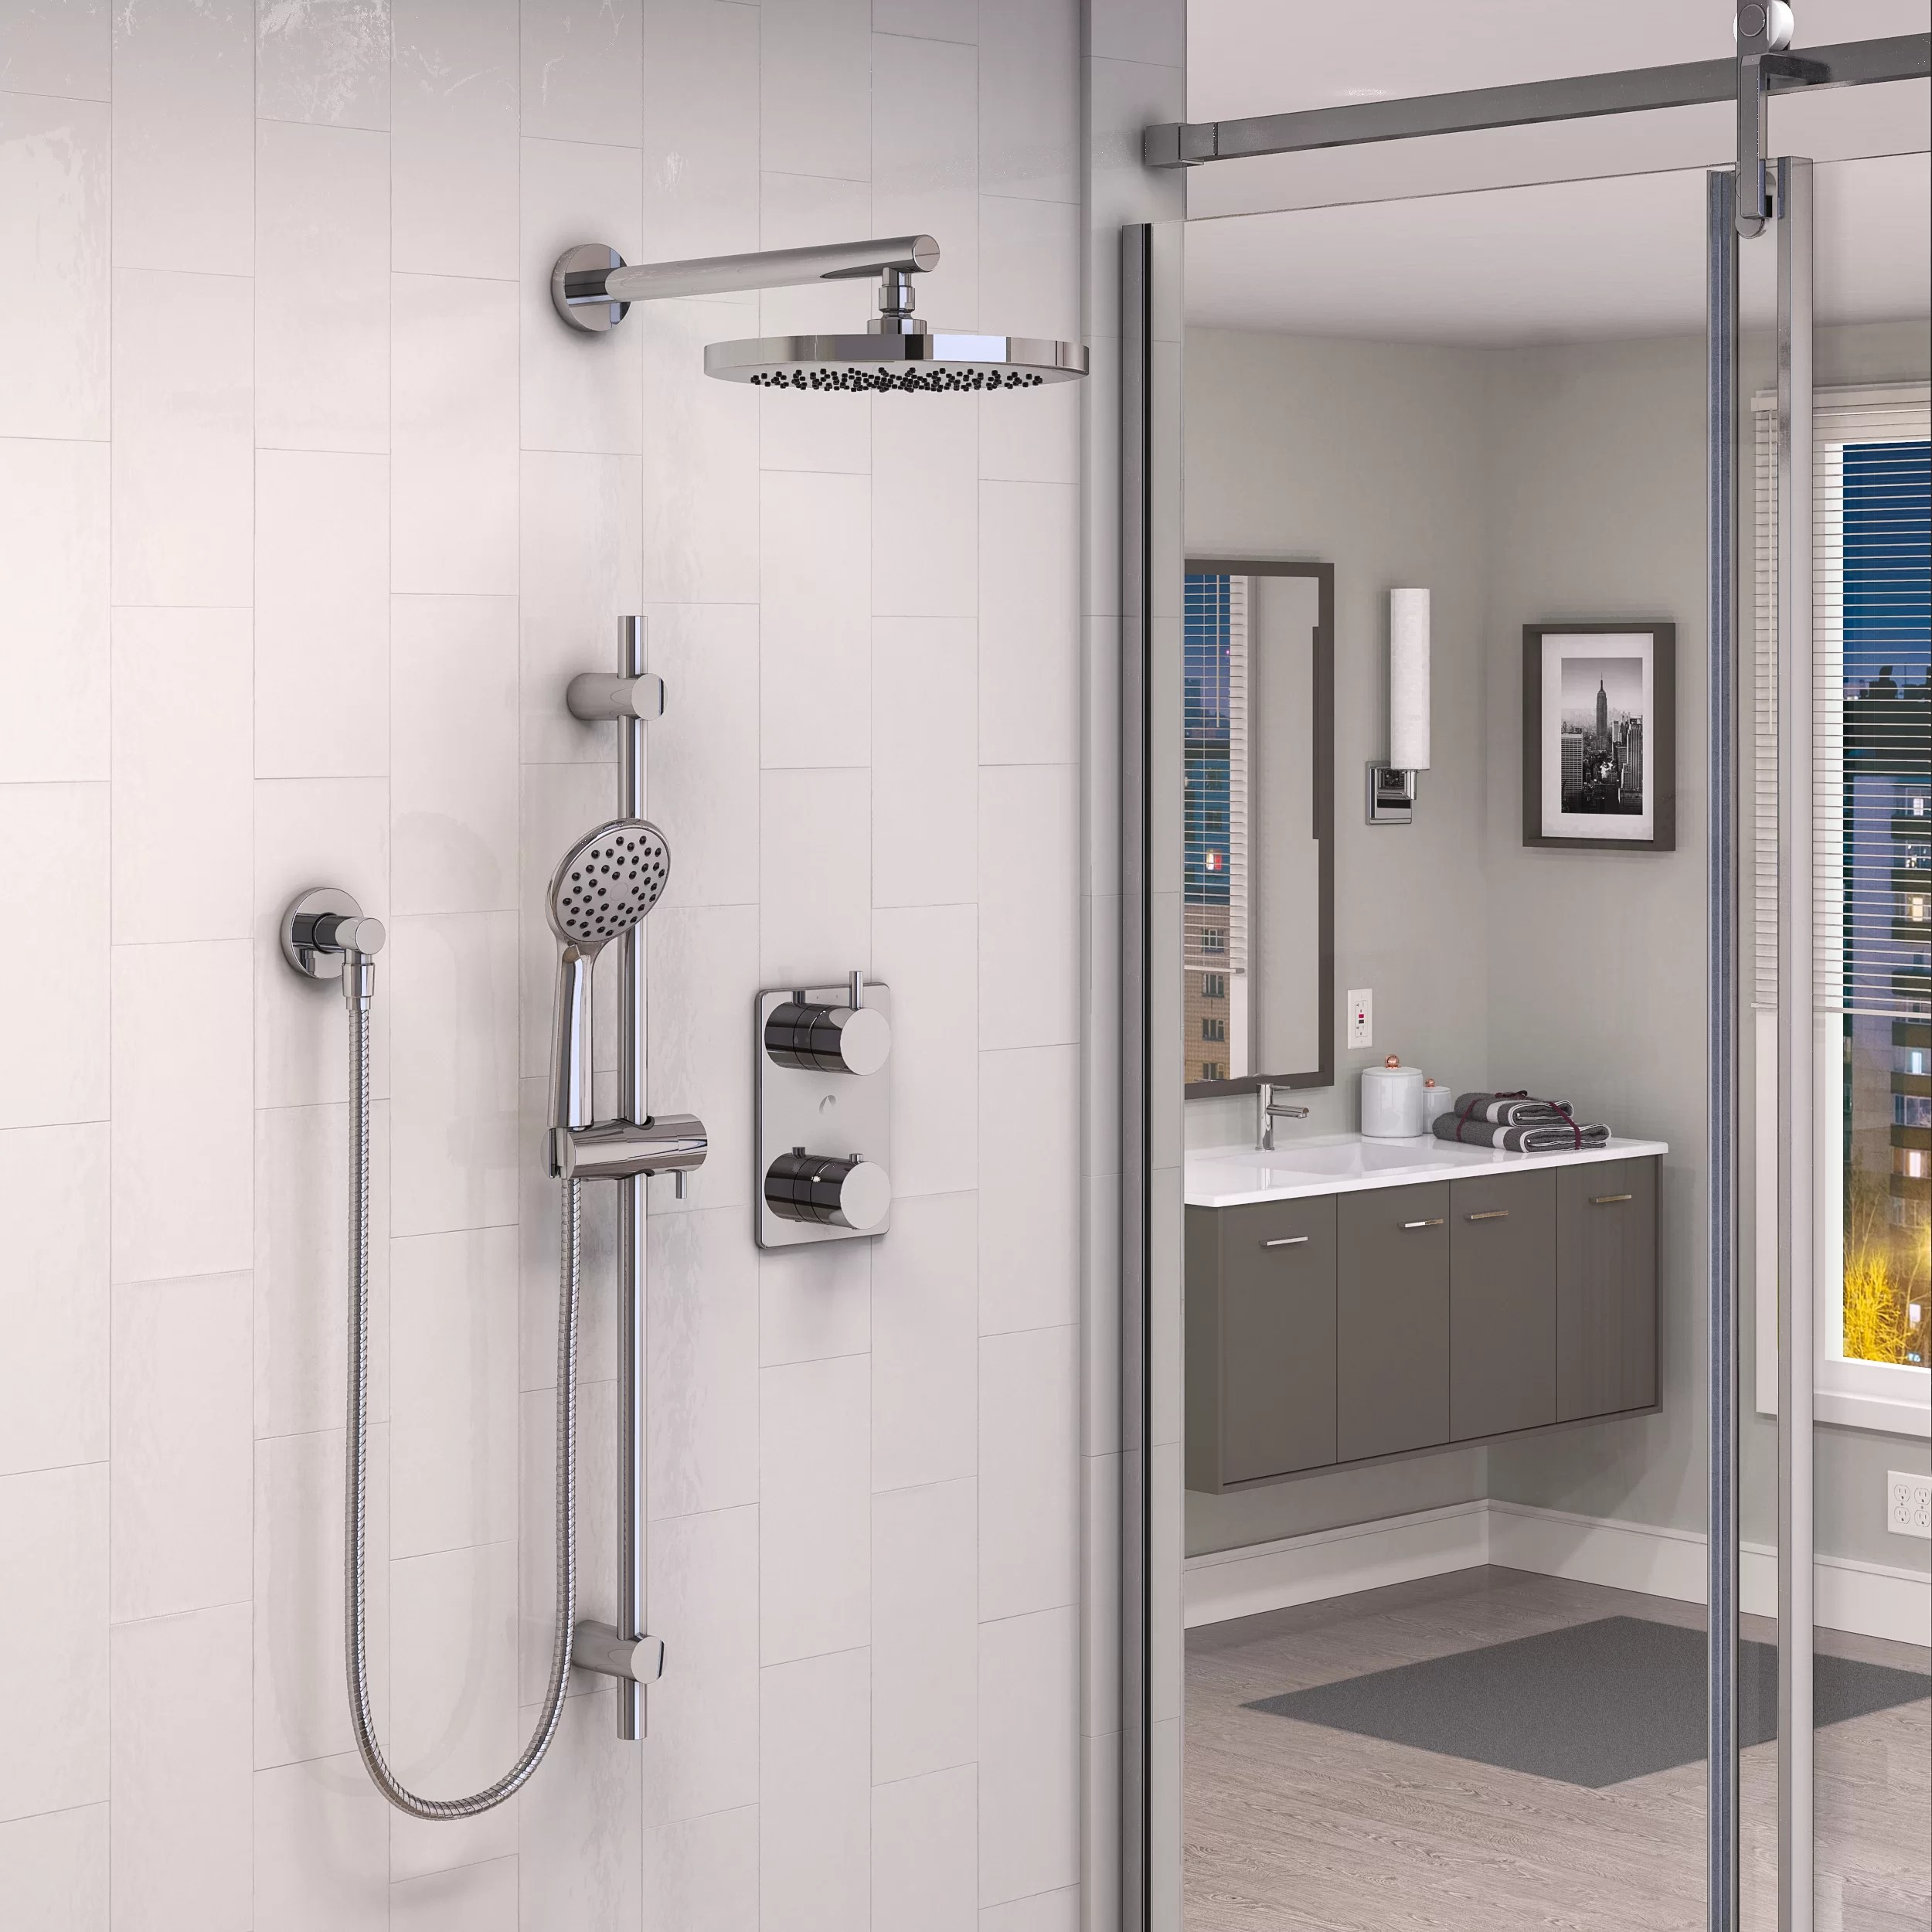 Pressure Balanced Complete Shower System With Rough In Valve